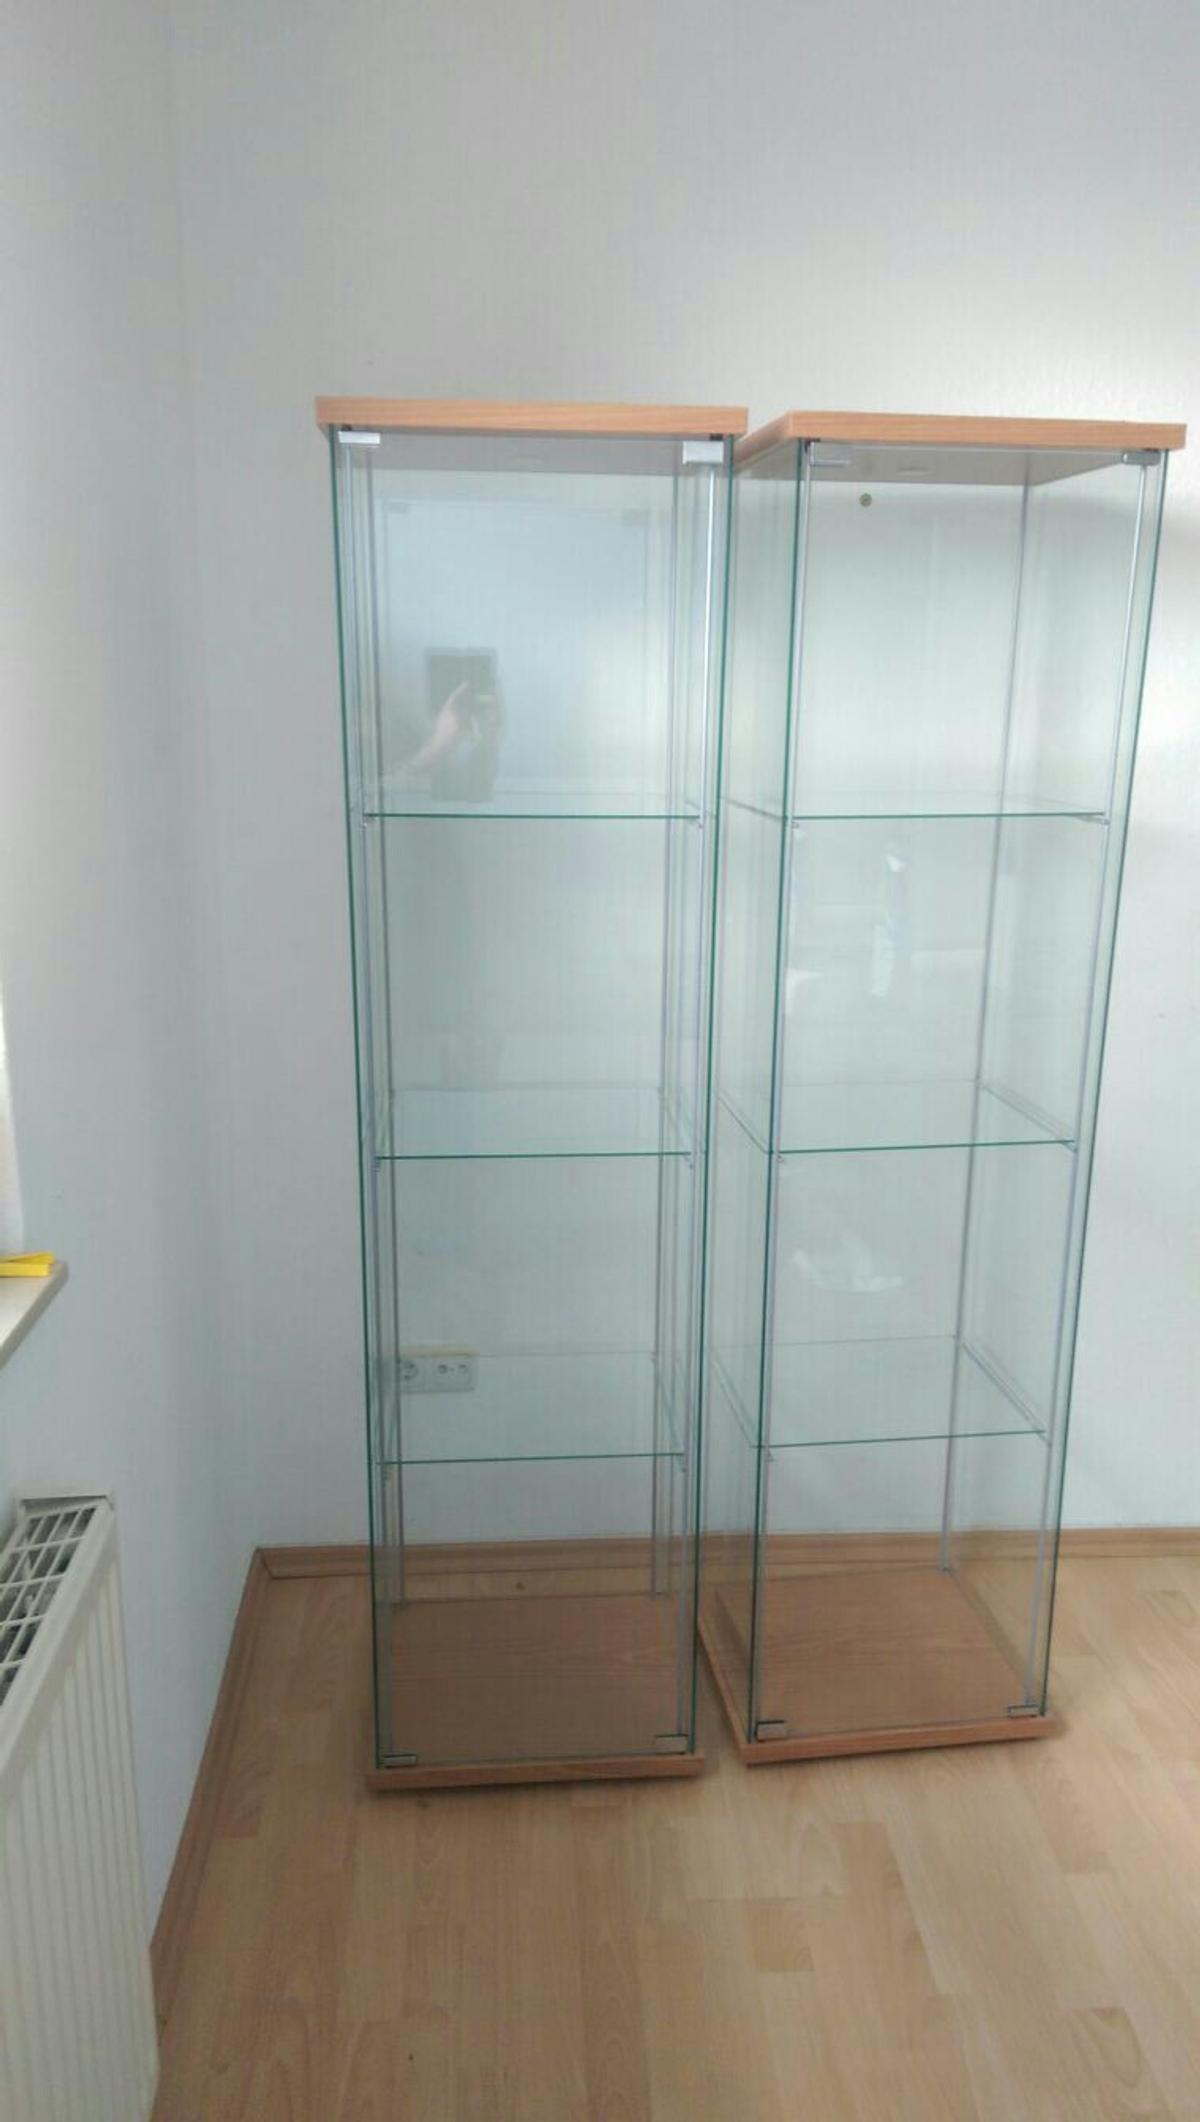 Glasvitrine Chrom Ikea Glasvitrinen 2 Stück Vb In 27755 Delmenhorst For €40.00 For Sale | Shpock